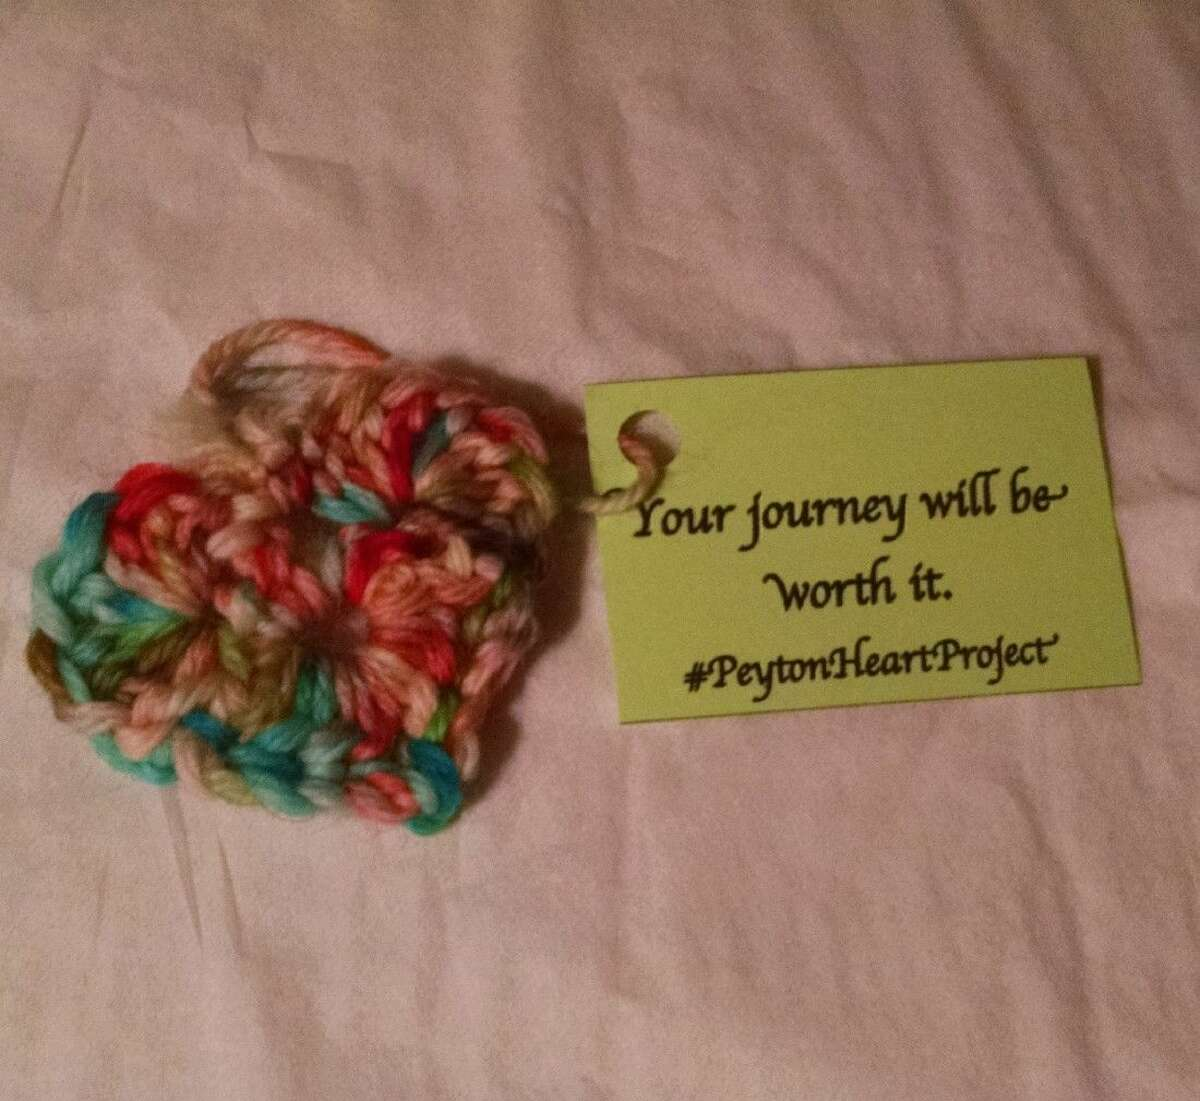 The goal of the Peyton Heart Project is to raise awareness about teen suicide and bullying.